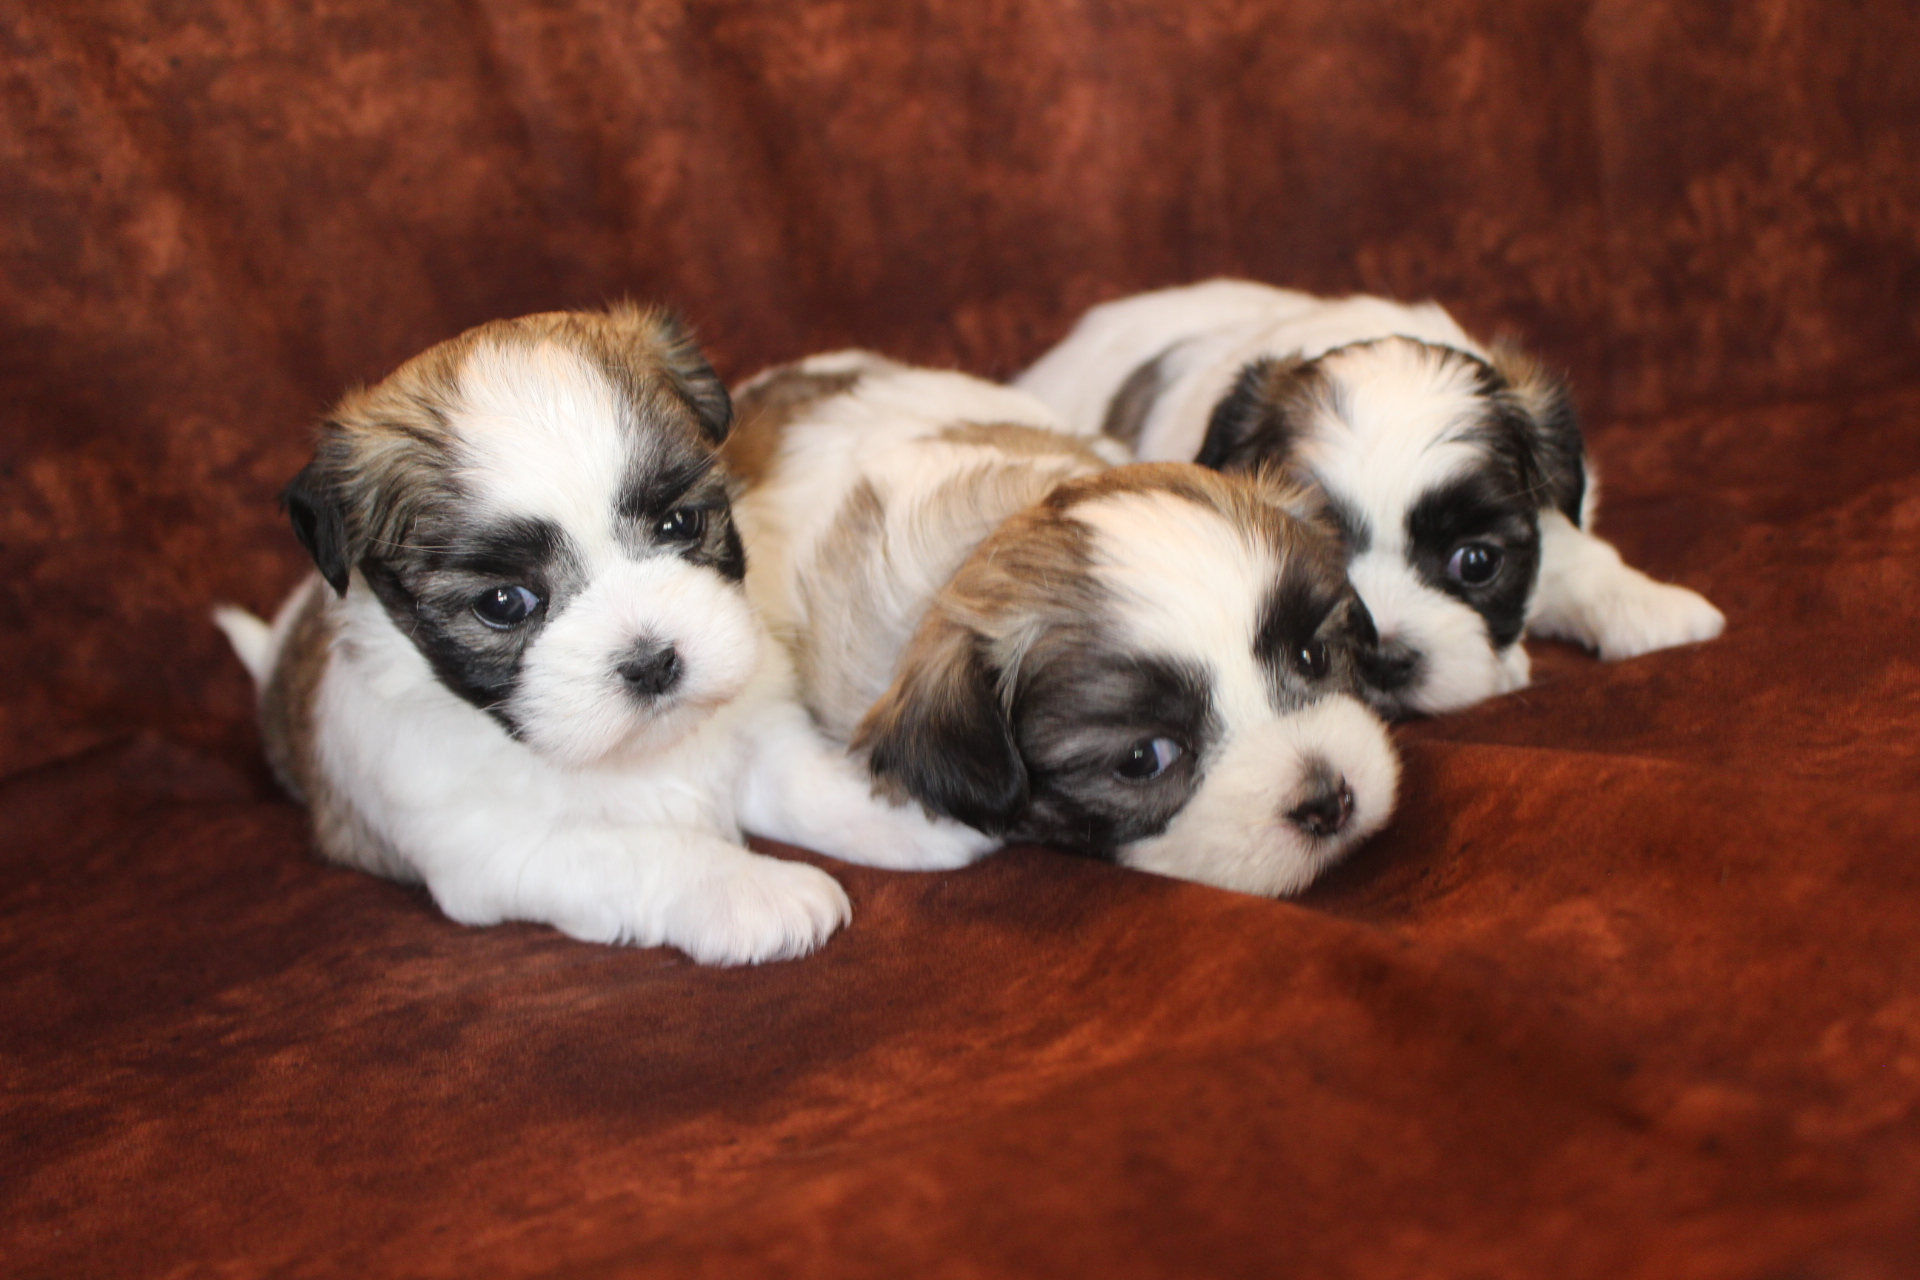 Malshi & Malshipoo – TLC Puppy Love